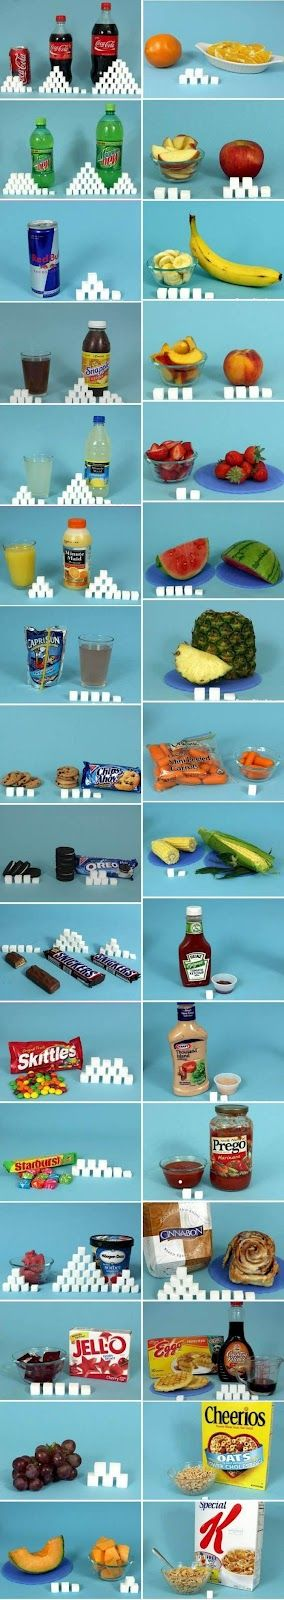 Sugar in our Foods